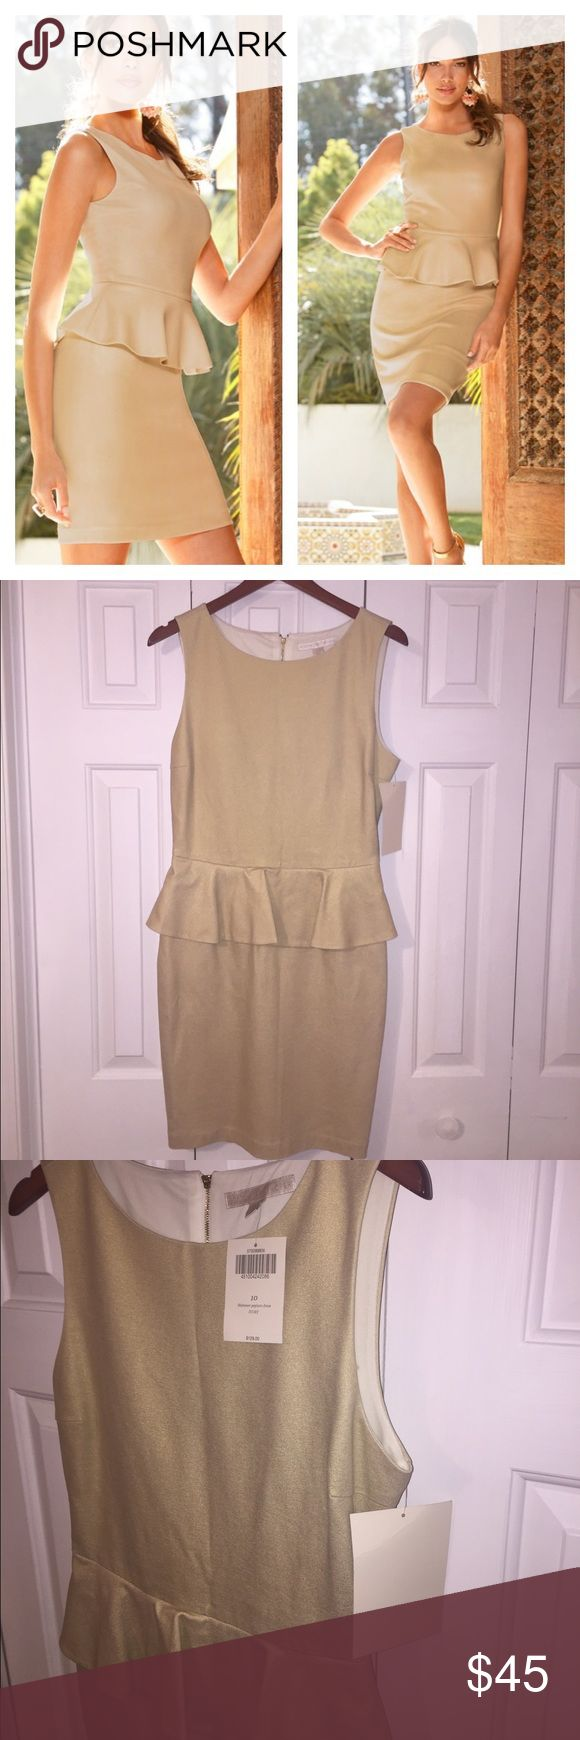 NWT Boston Proper Shimmer Peplum Dress A favorite silhouette, seamed for shaping in ponte with allover golden shimmer. Fully lined. Exposed back zip. Material is Rayon/nylon/. This dress is a pretty shimmering gold color, that you can accessorize so many ways. Boston Proper Dresses